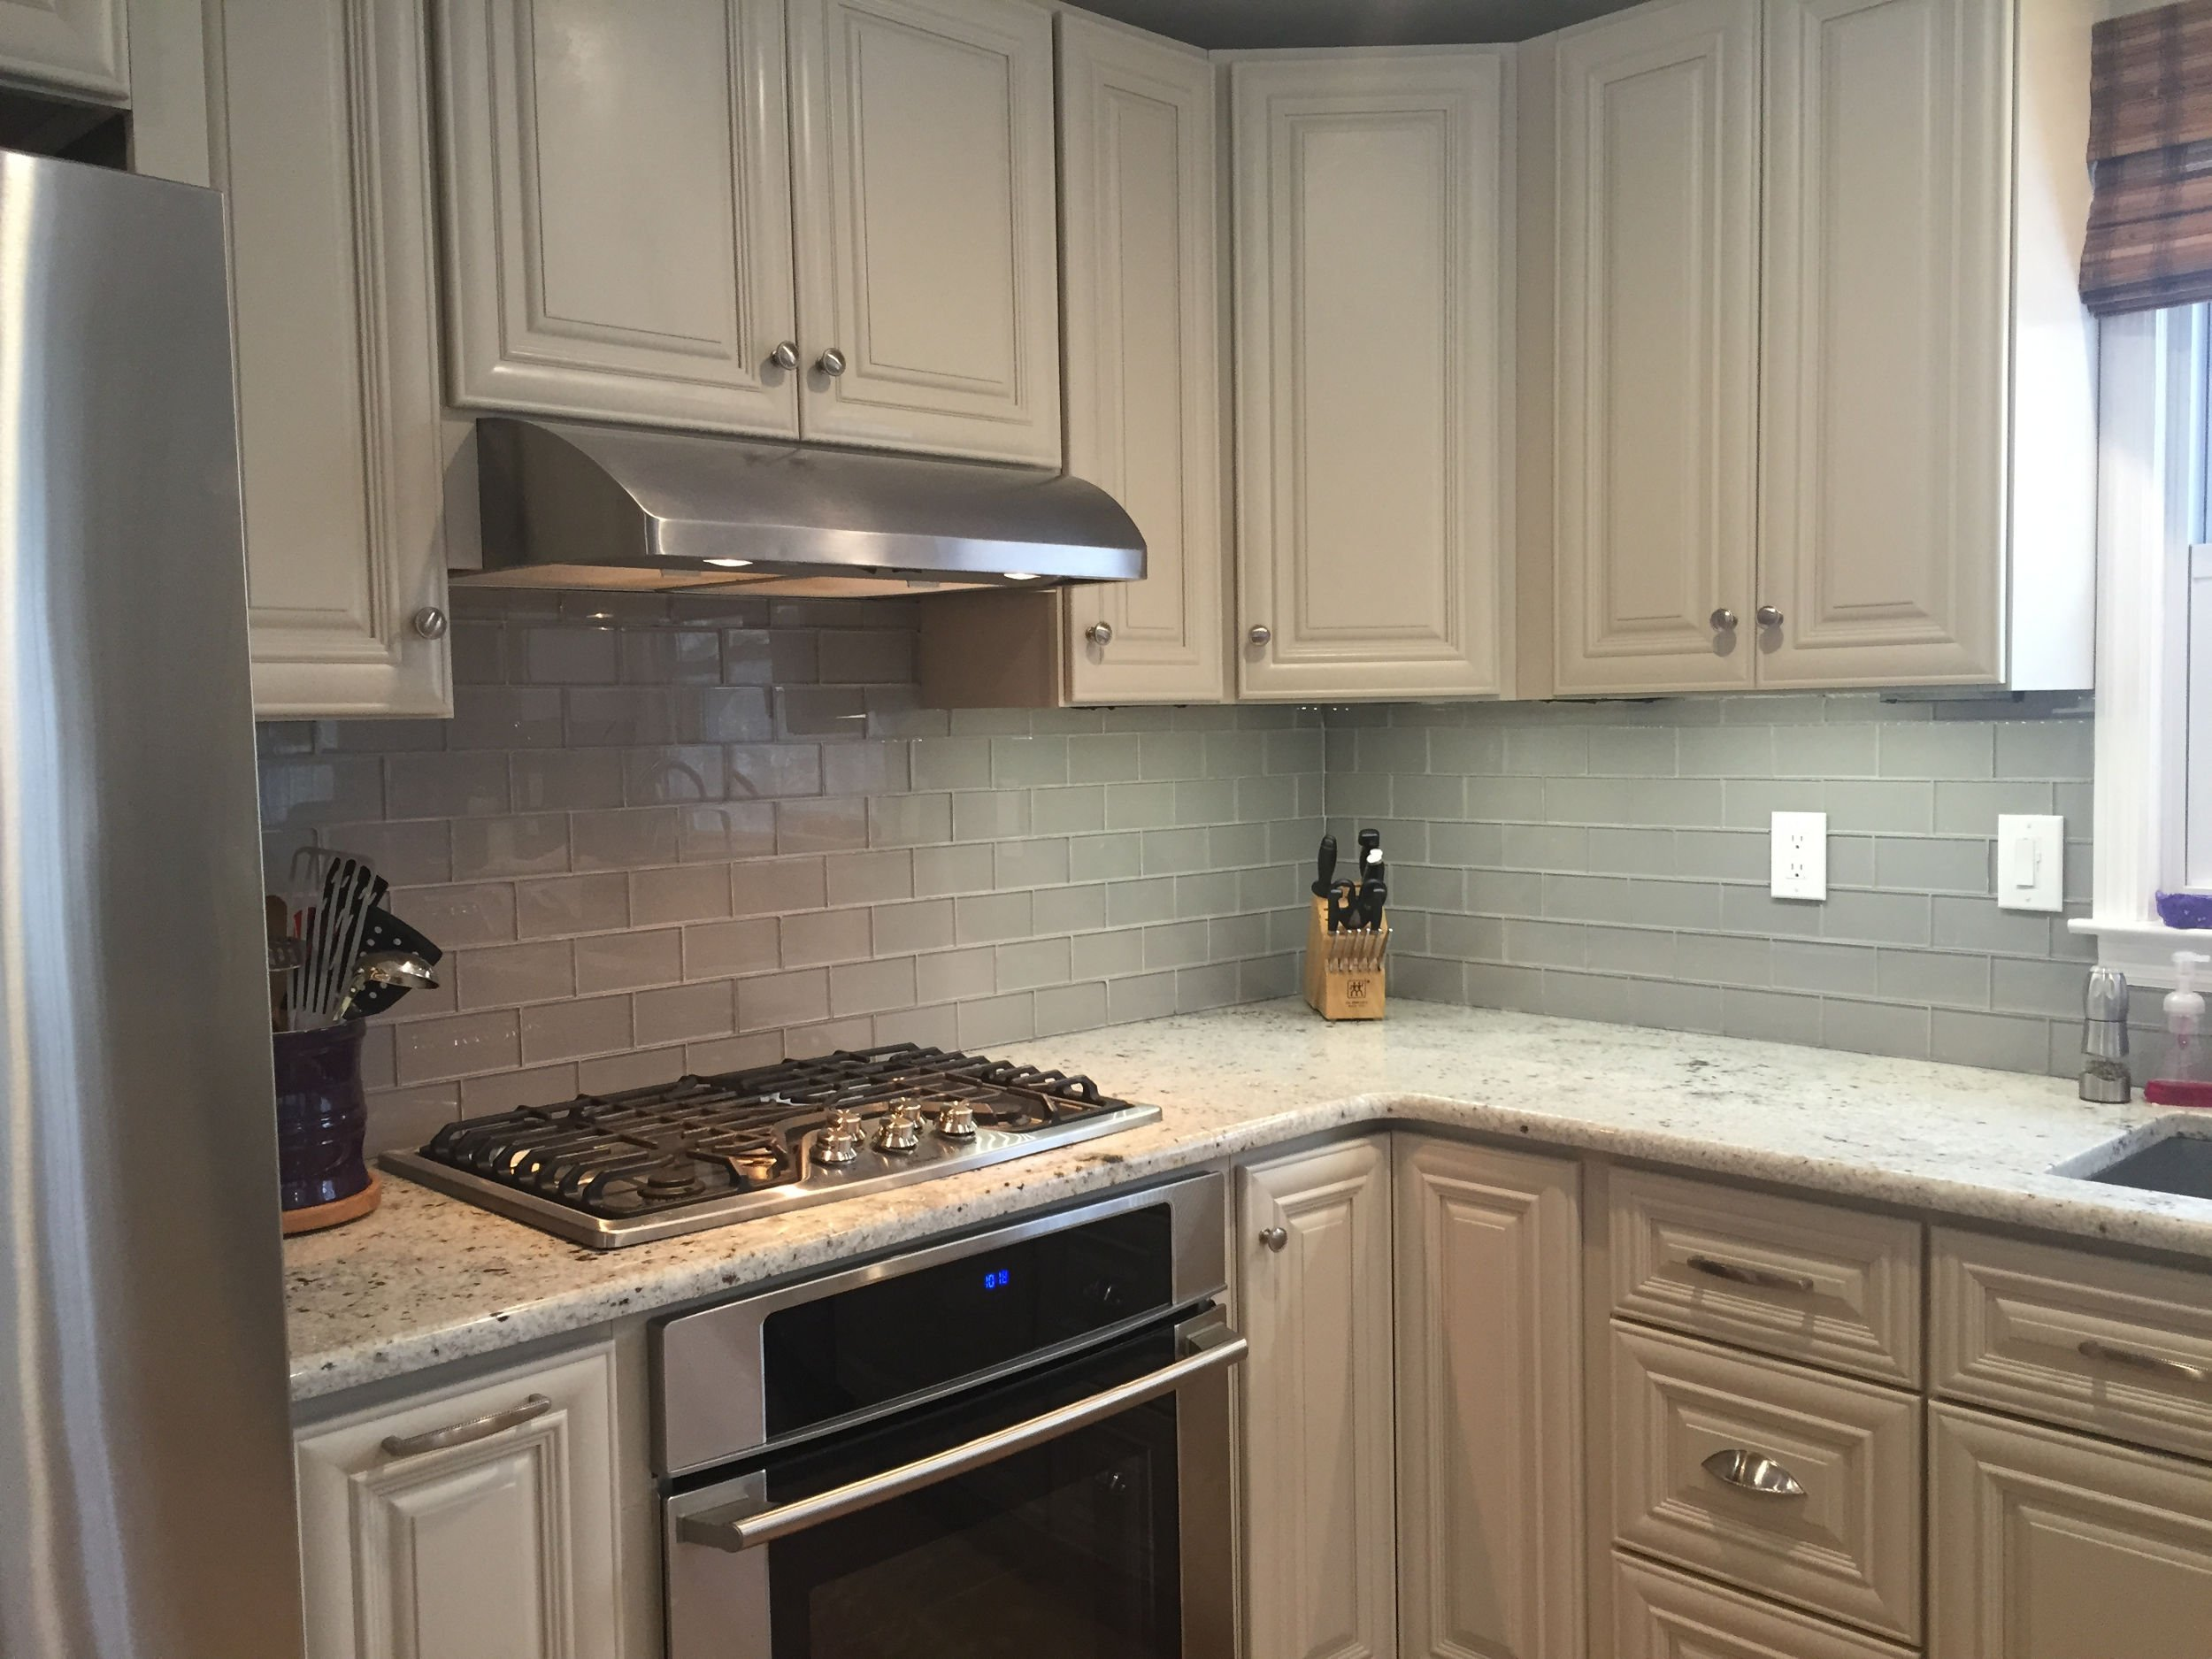 Kitchen Subway Tile Ideas Part - 35: Gray Kitchen Backsplash.